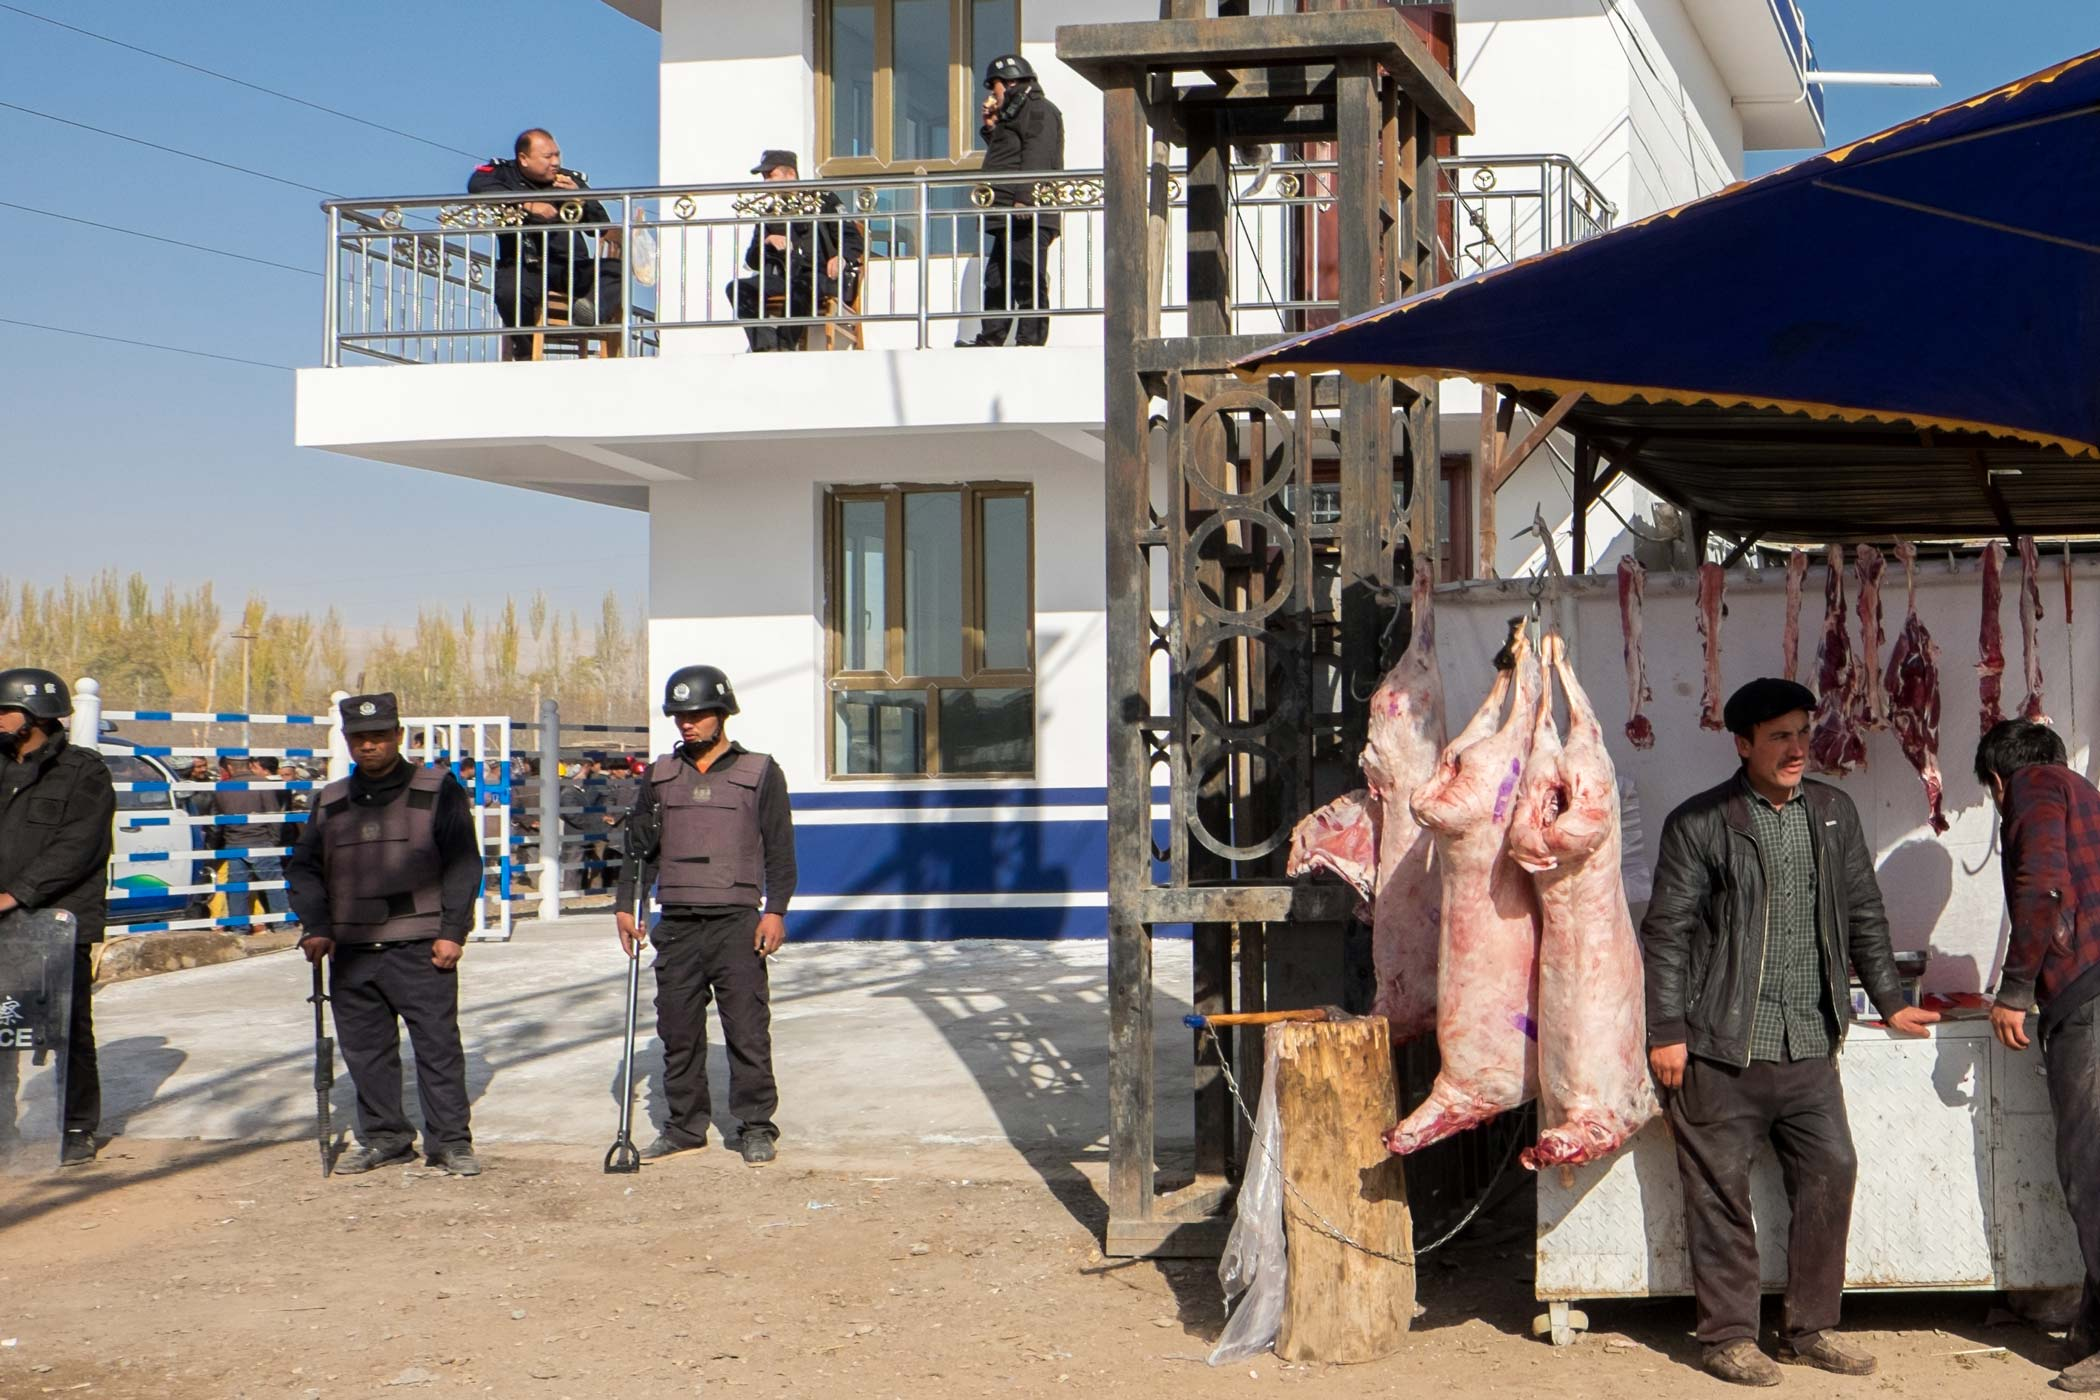 Police stand guard next to a meat stall in Kashgar, Xinjiang.